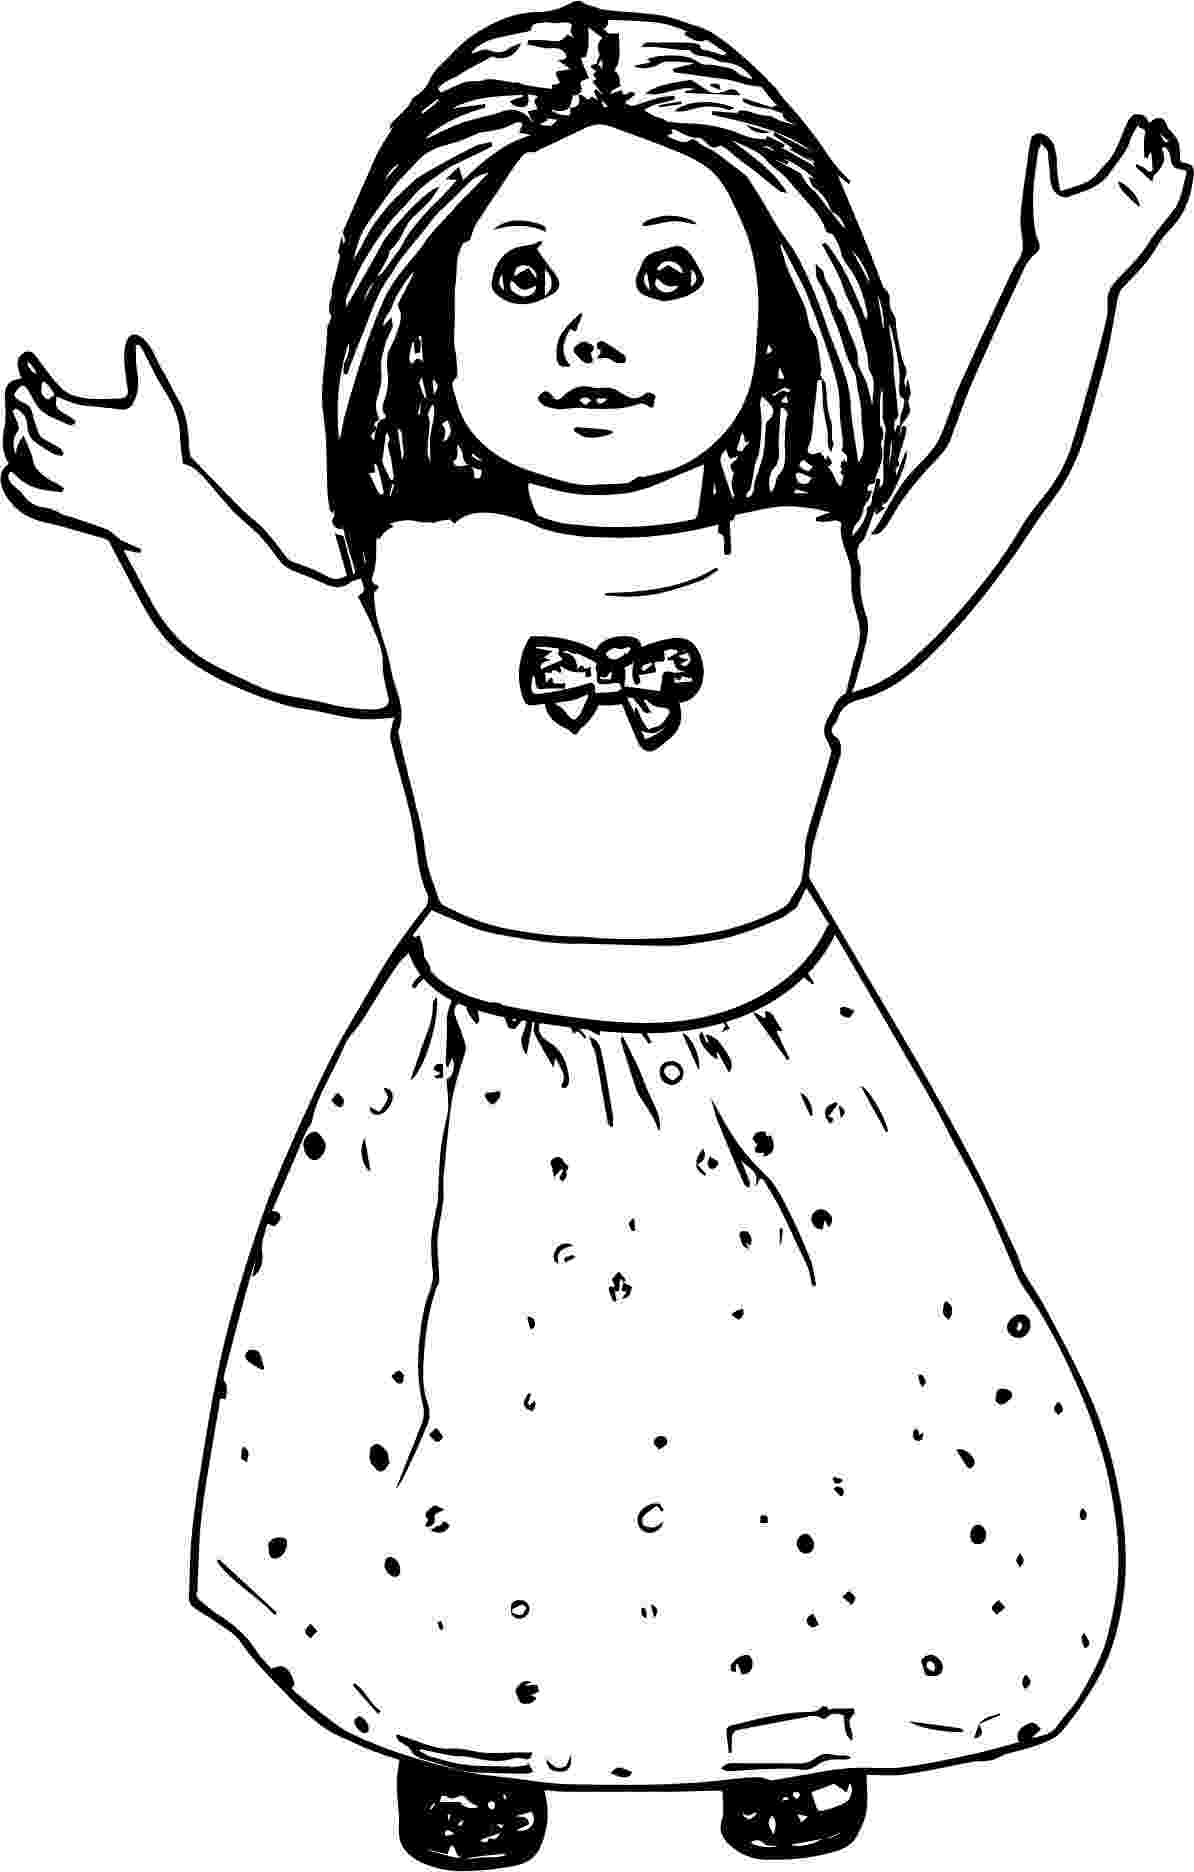 american girl doll pictures american girl coloring pages best coloring pages for kids doll american girl pictures